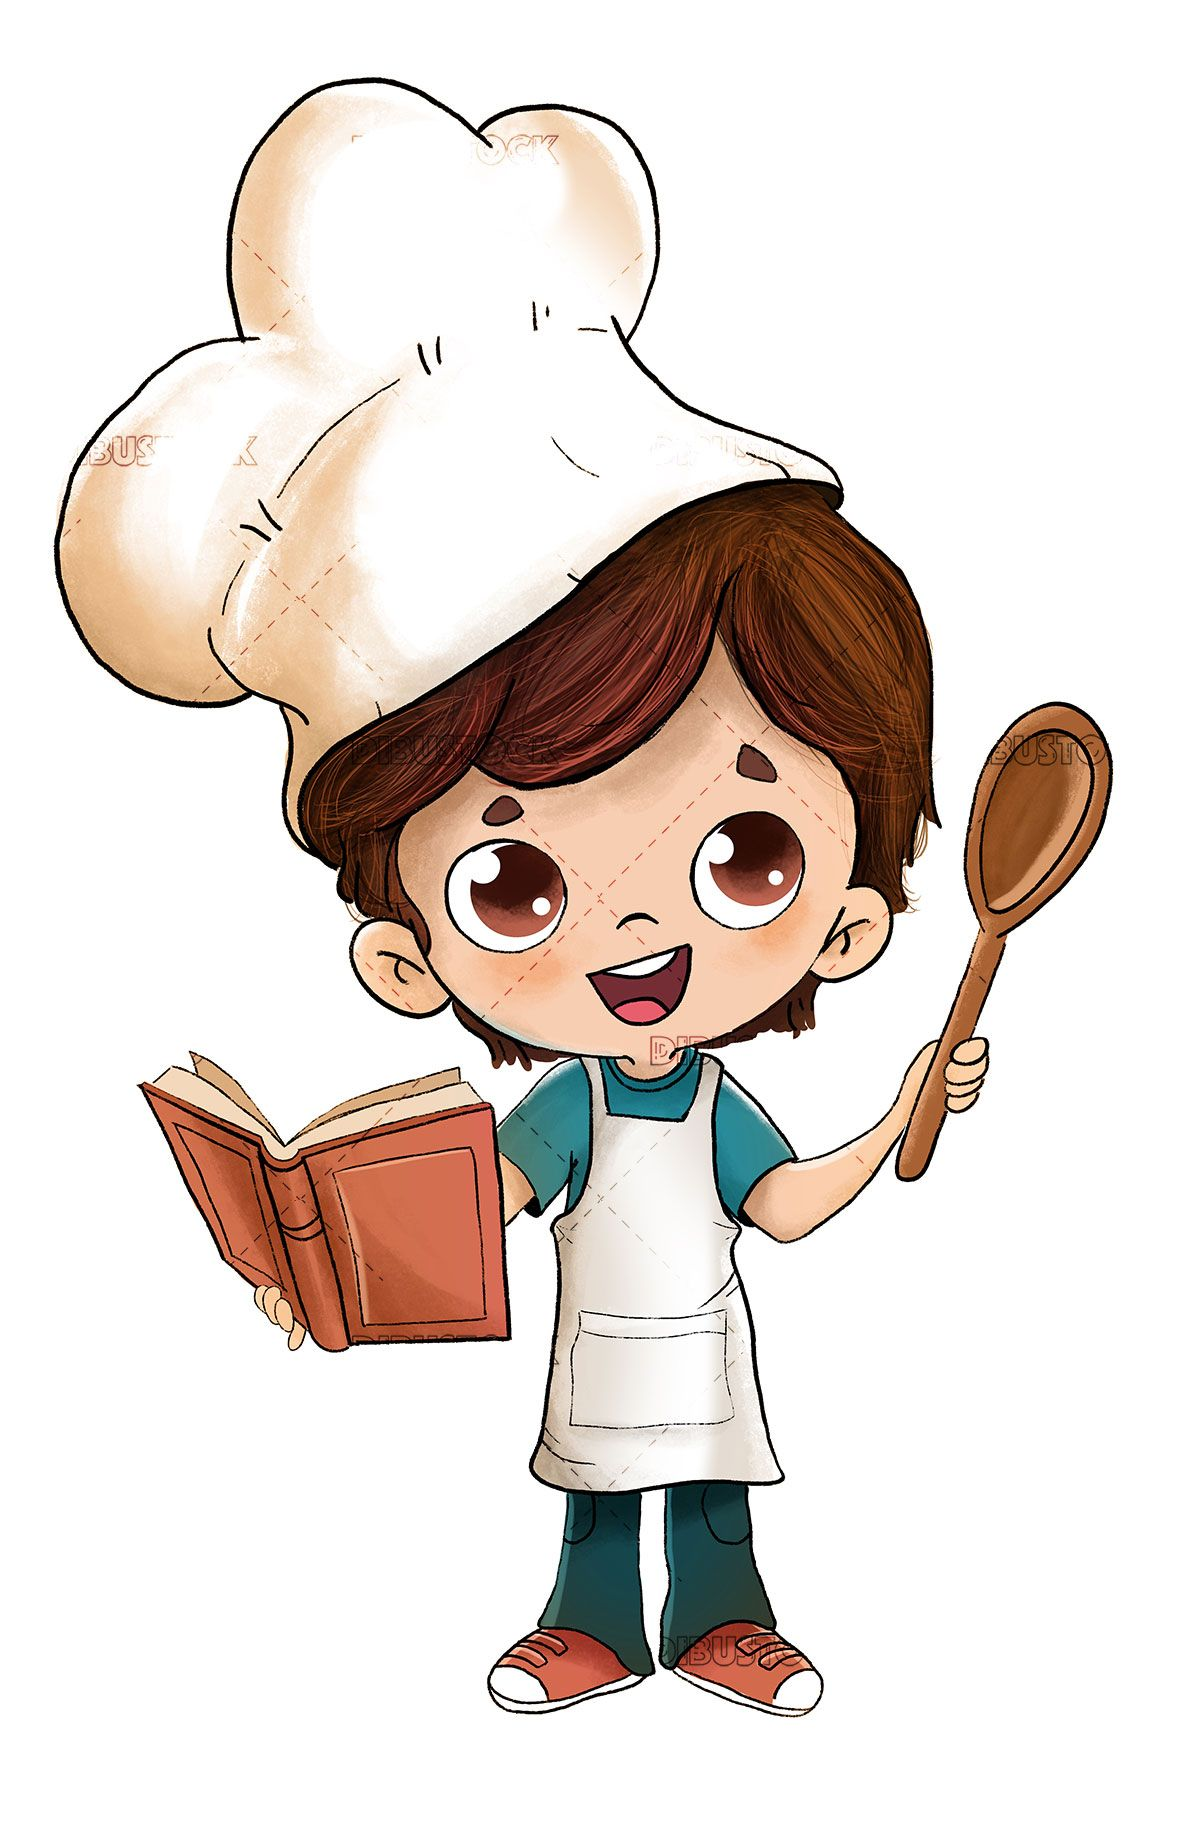 Boy Cooking With A Recipe Book In 2020 Cute Boy Drawing Little Boy Drawing Cartoon